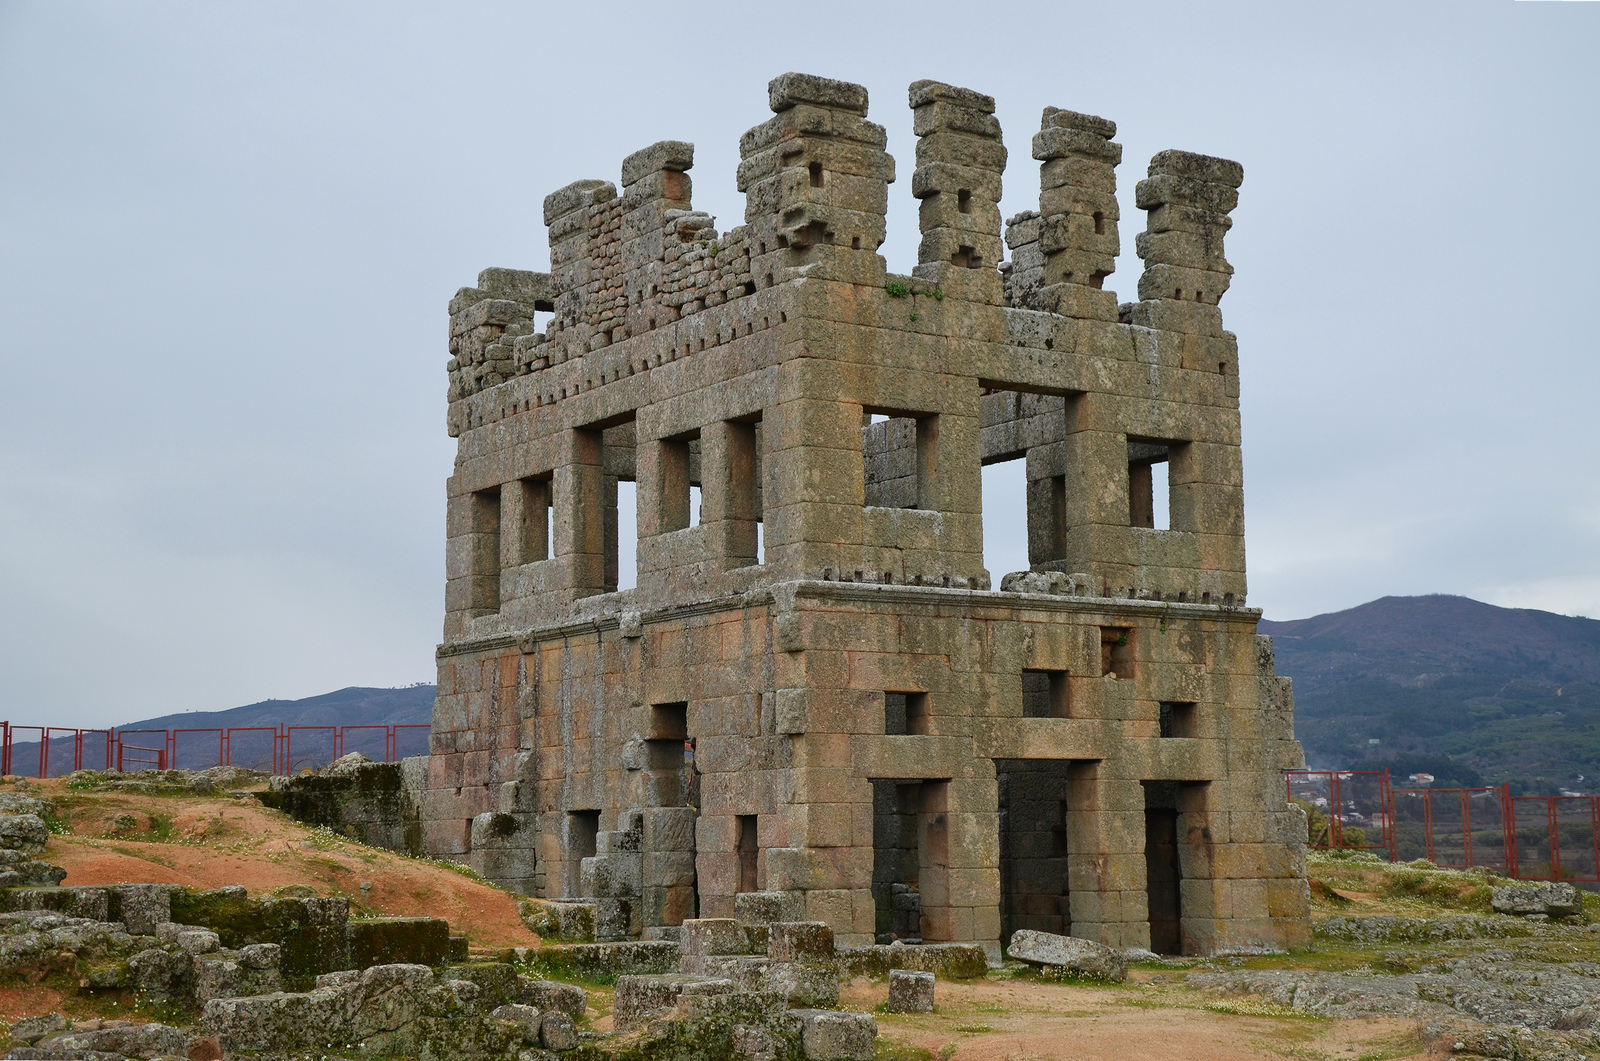 Belmonte Portugal  city images : ... Roman Tower of Centum Cellas, Belmonte Portugal | FOLLOWING HADRIAN